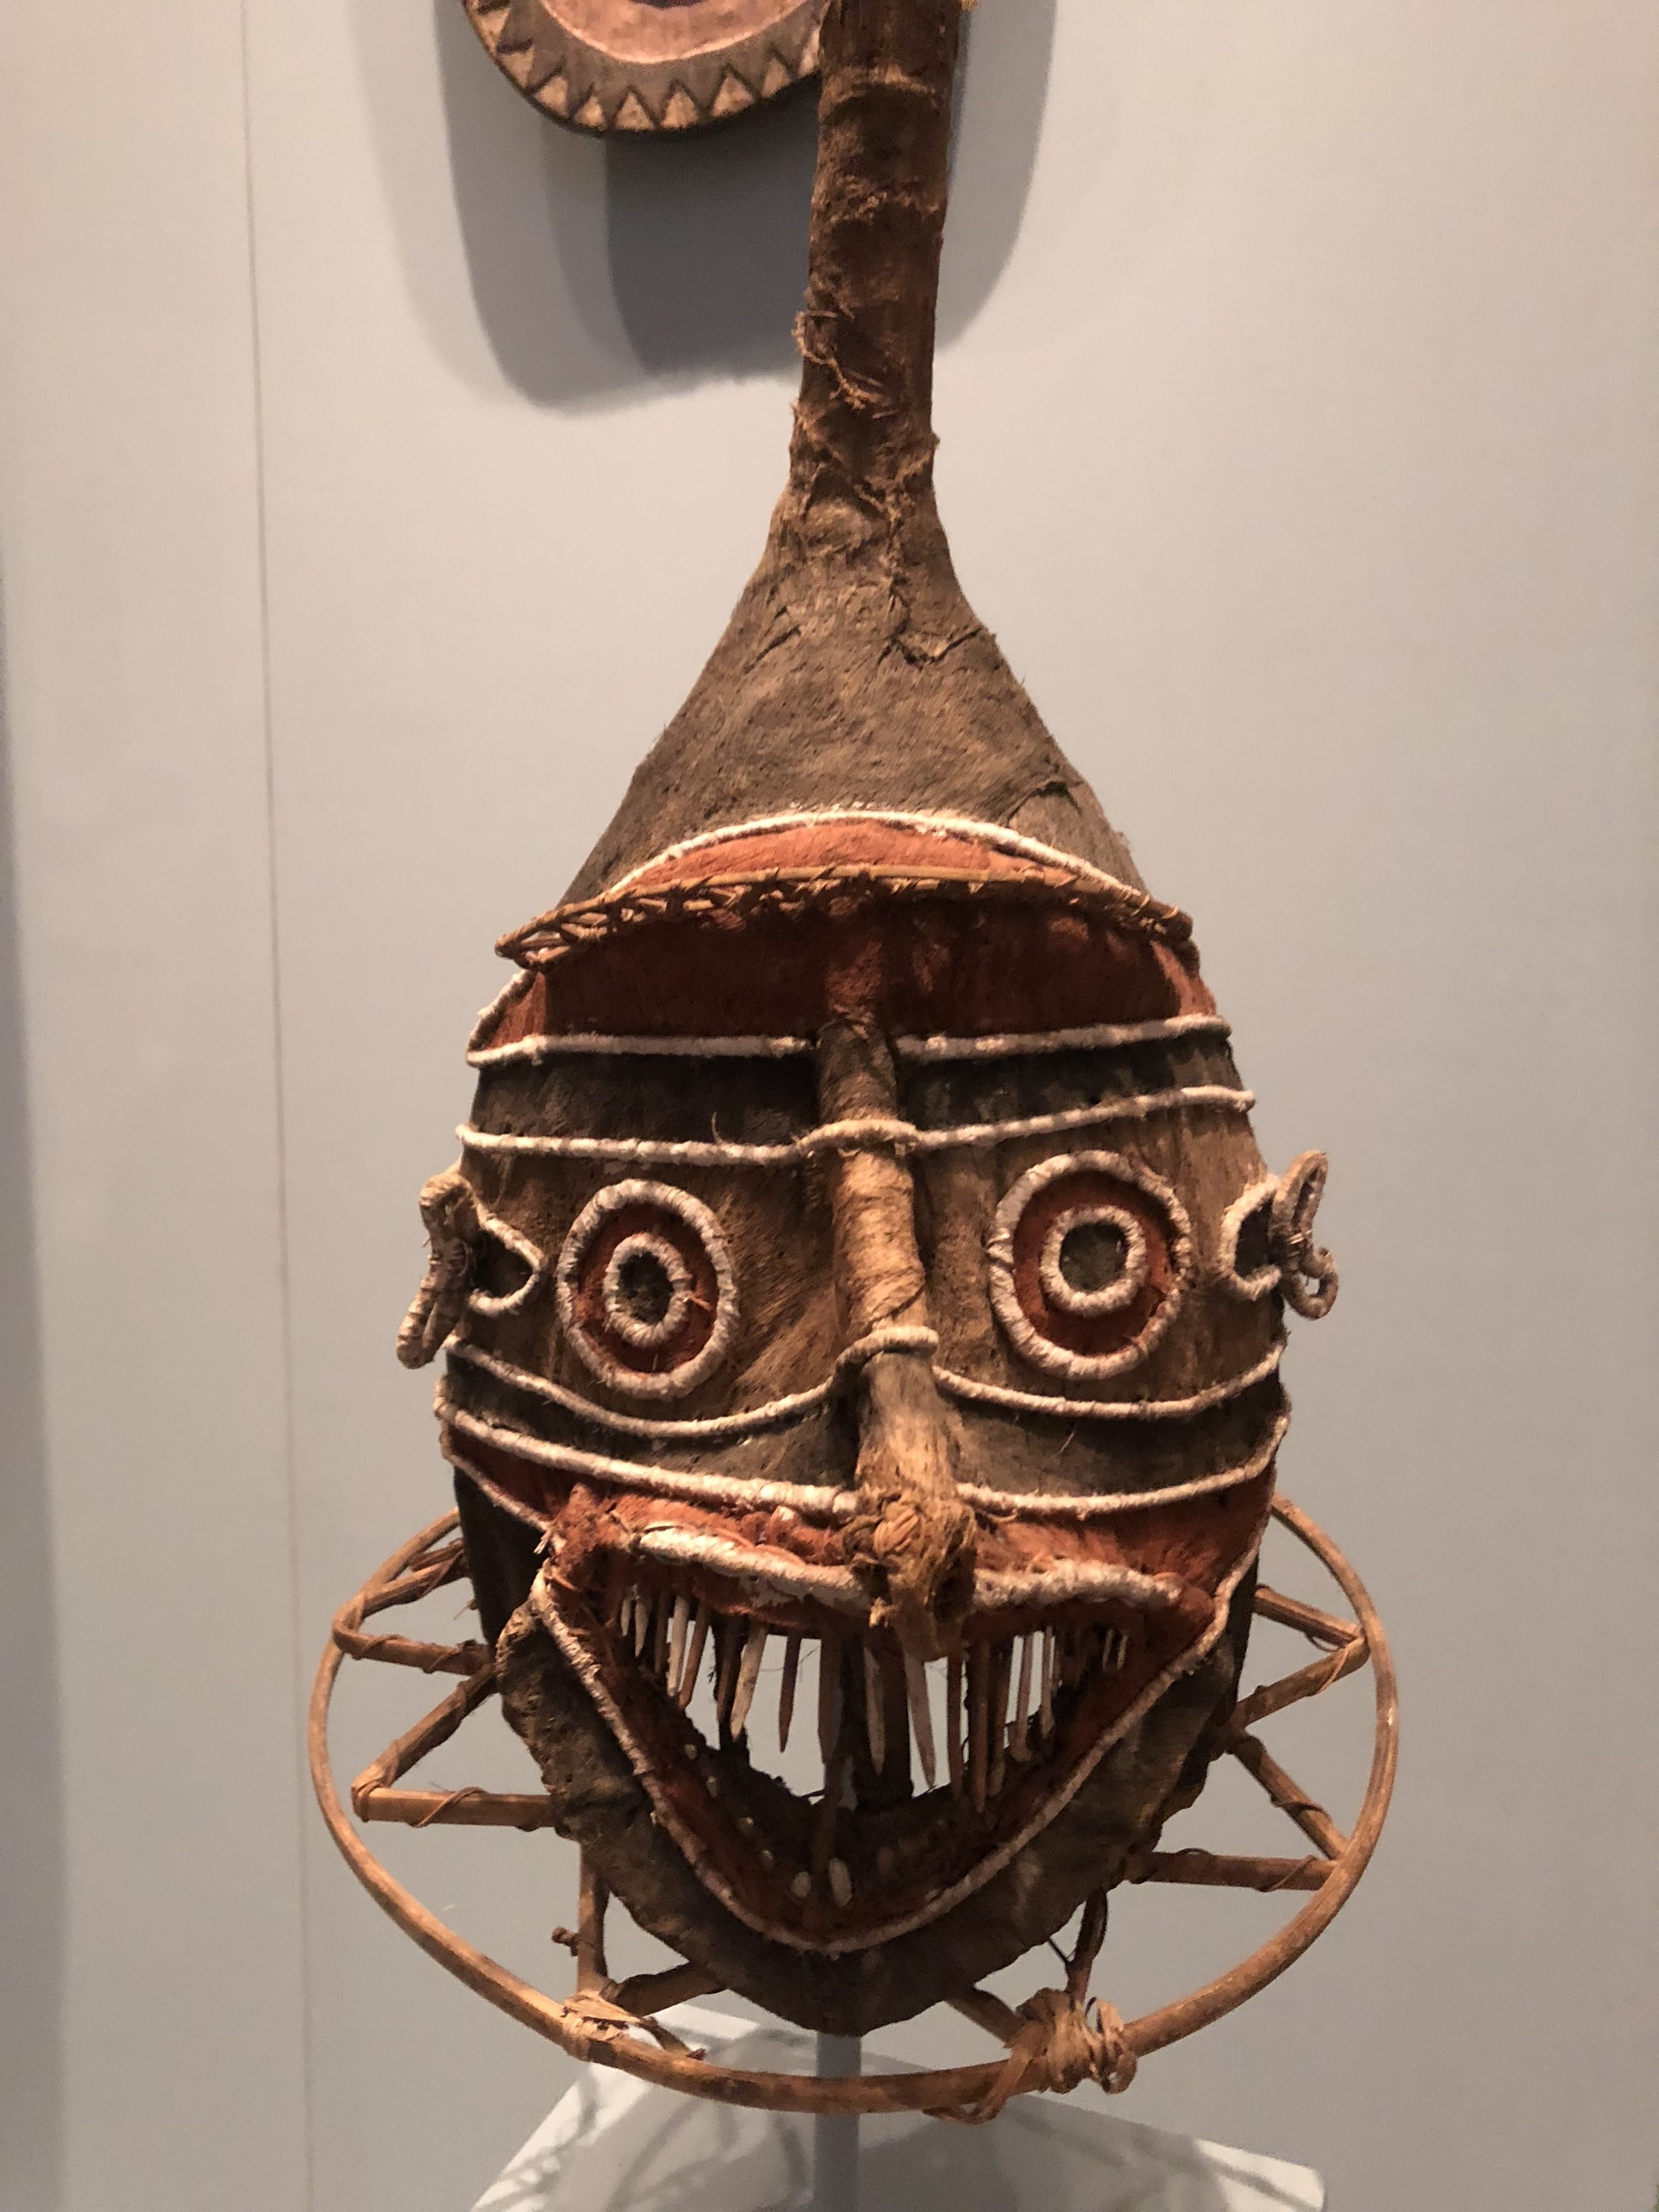 The Met: Mask Artifact Observation